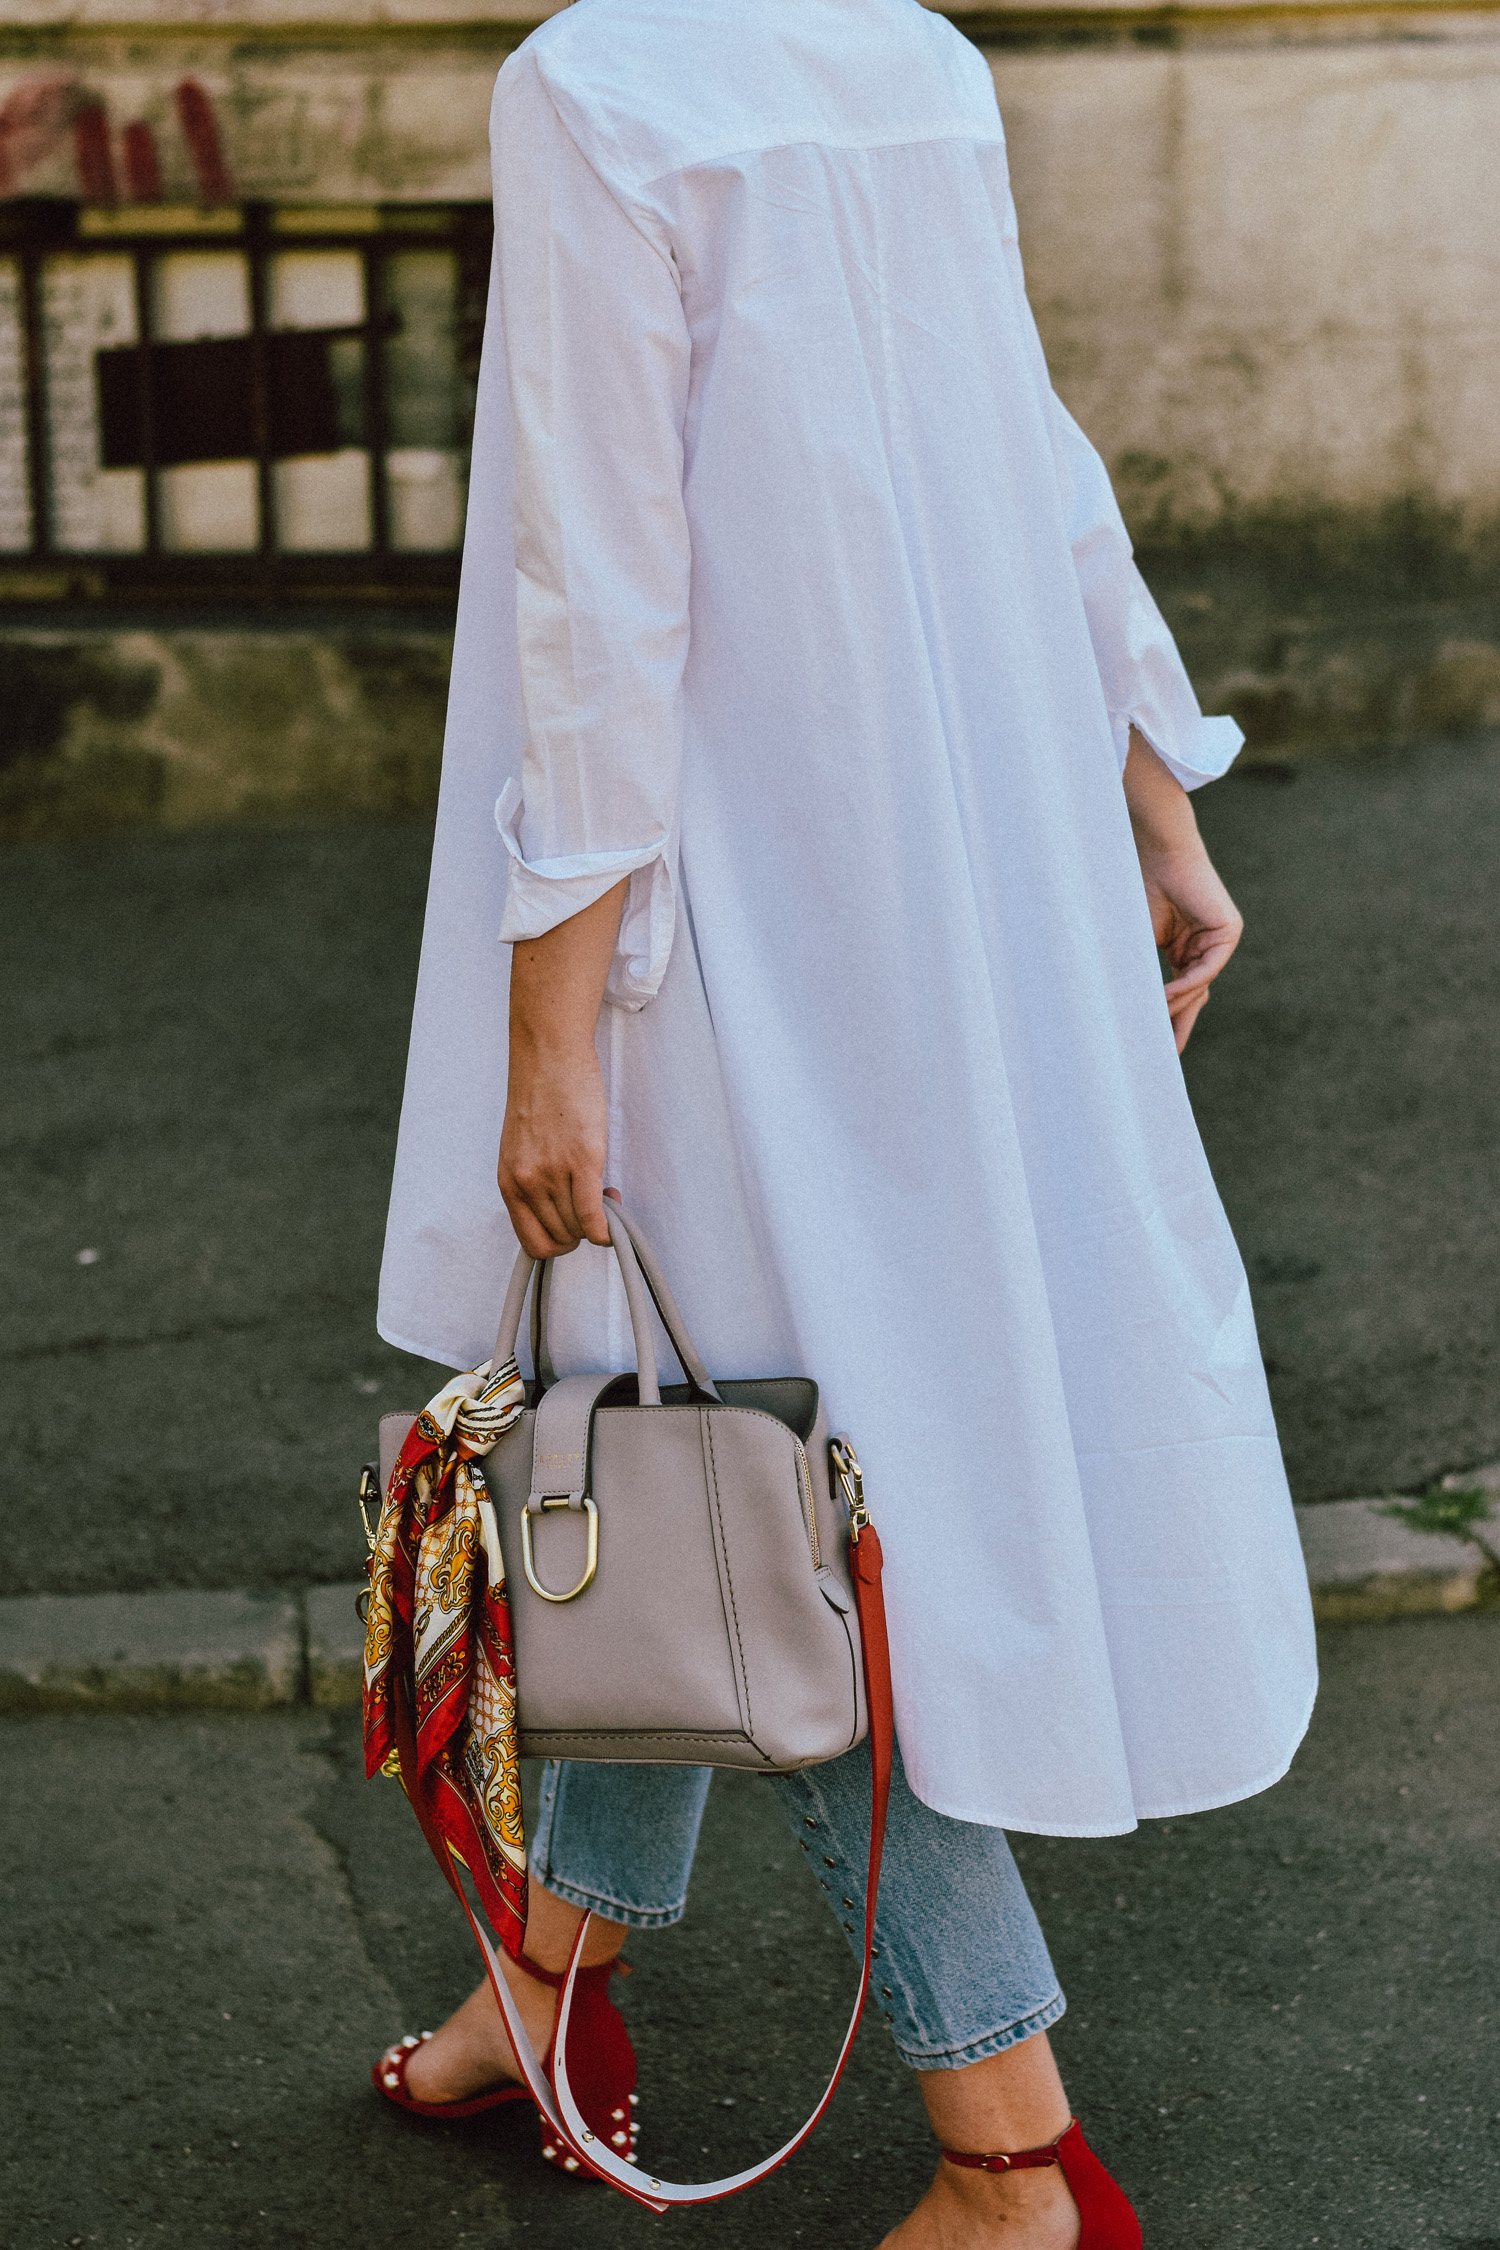 Where to find the perfect everyday bag couturezilla for High end white t shirts